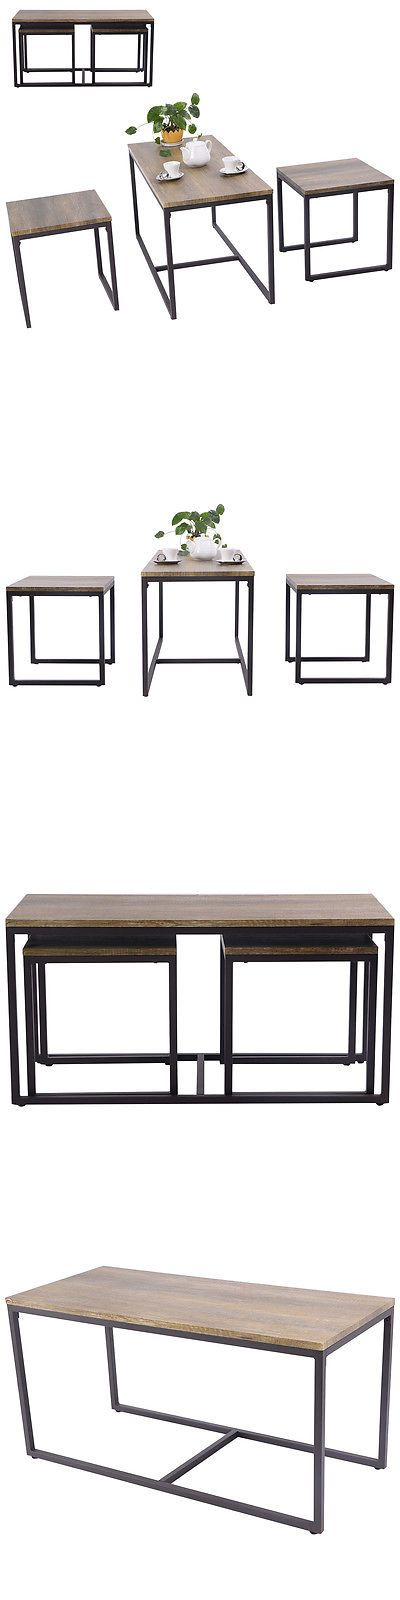 furniture: 3 Piece Nesting Coffee And End Table Set Wood Modern Living Room Furniture Decor BUY IT NOW ONLY: $59.99